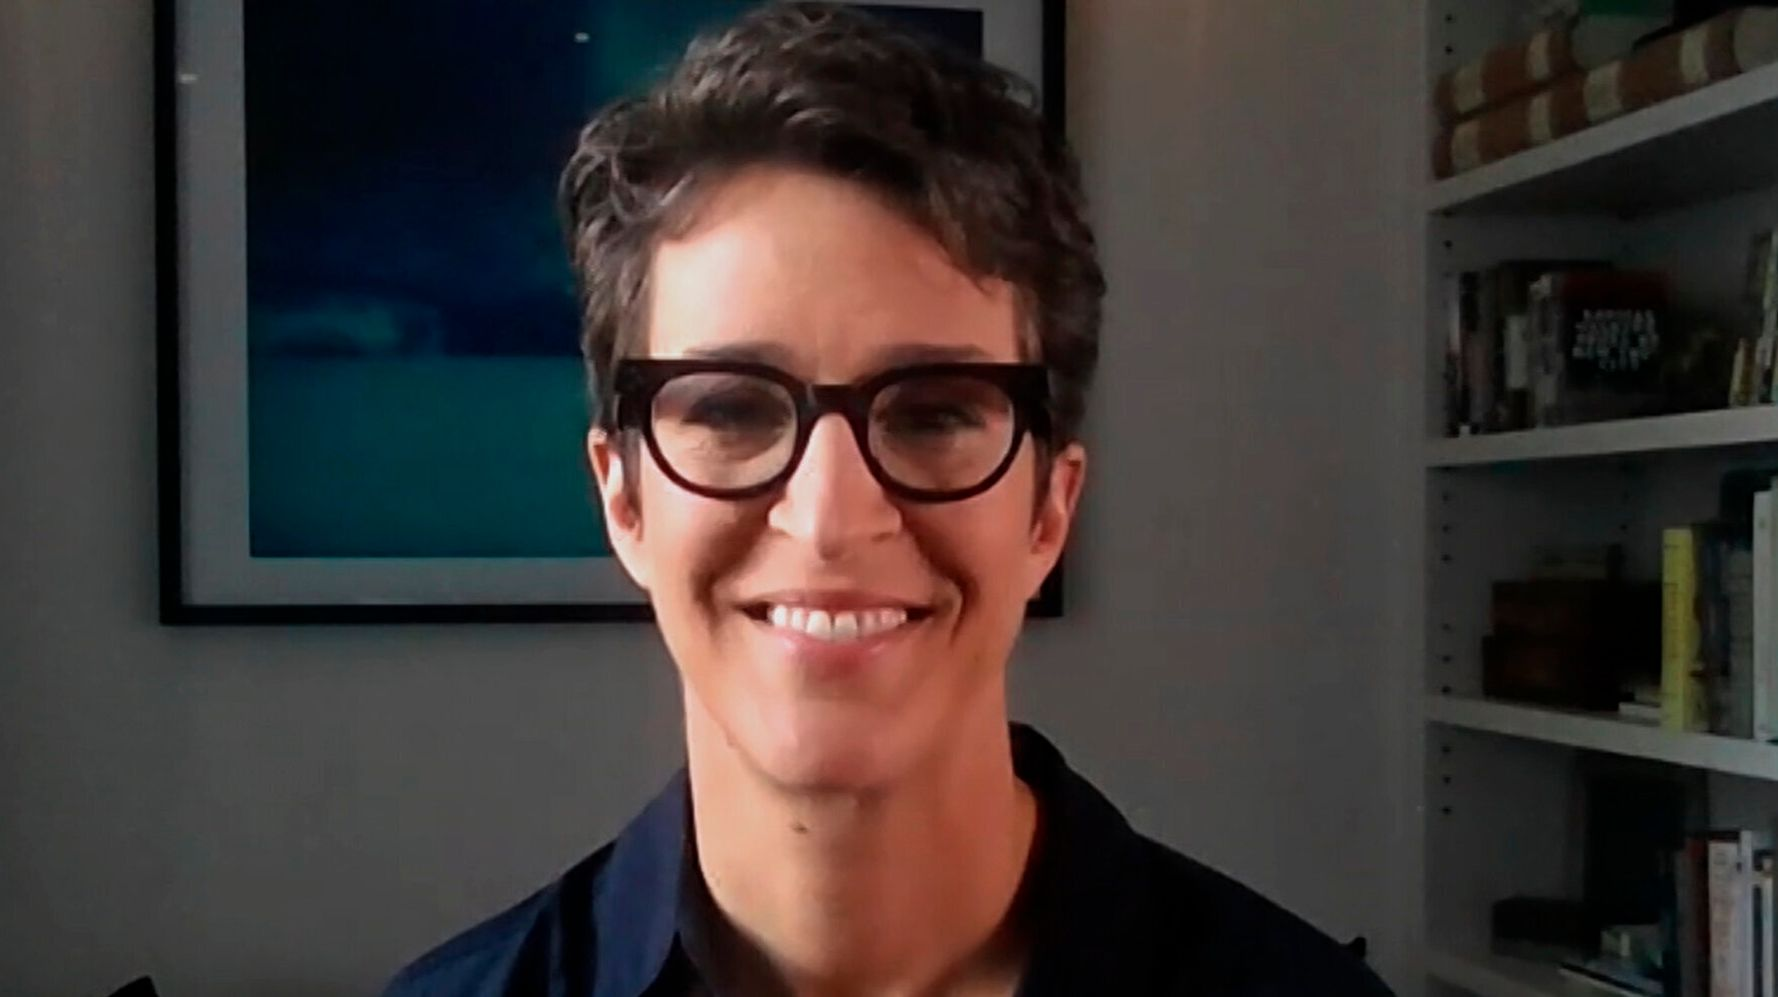 Rachel Maddow Says Partner's COVID-19 Fight Was 'Scariest Thing I've Ever Been Through'